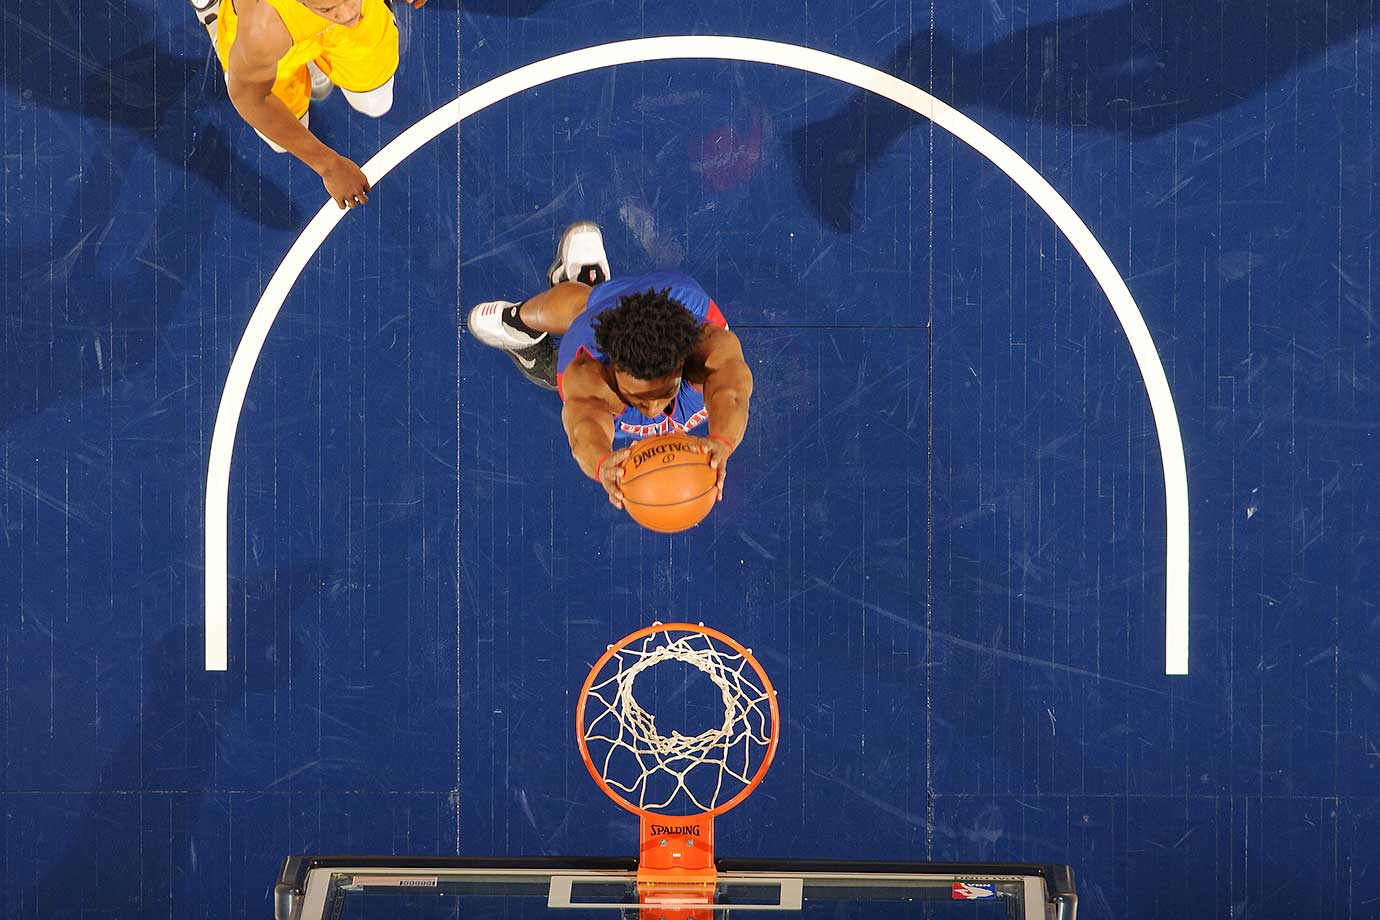 Stanley Johnson of the Detroit Pistons goes up for a dunk against the Indiana Pacers.